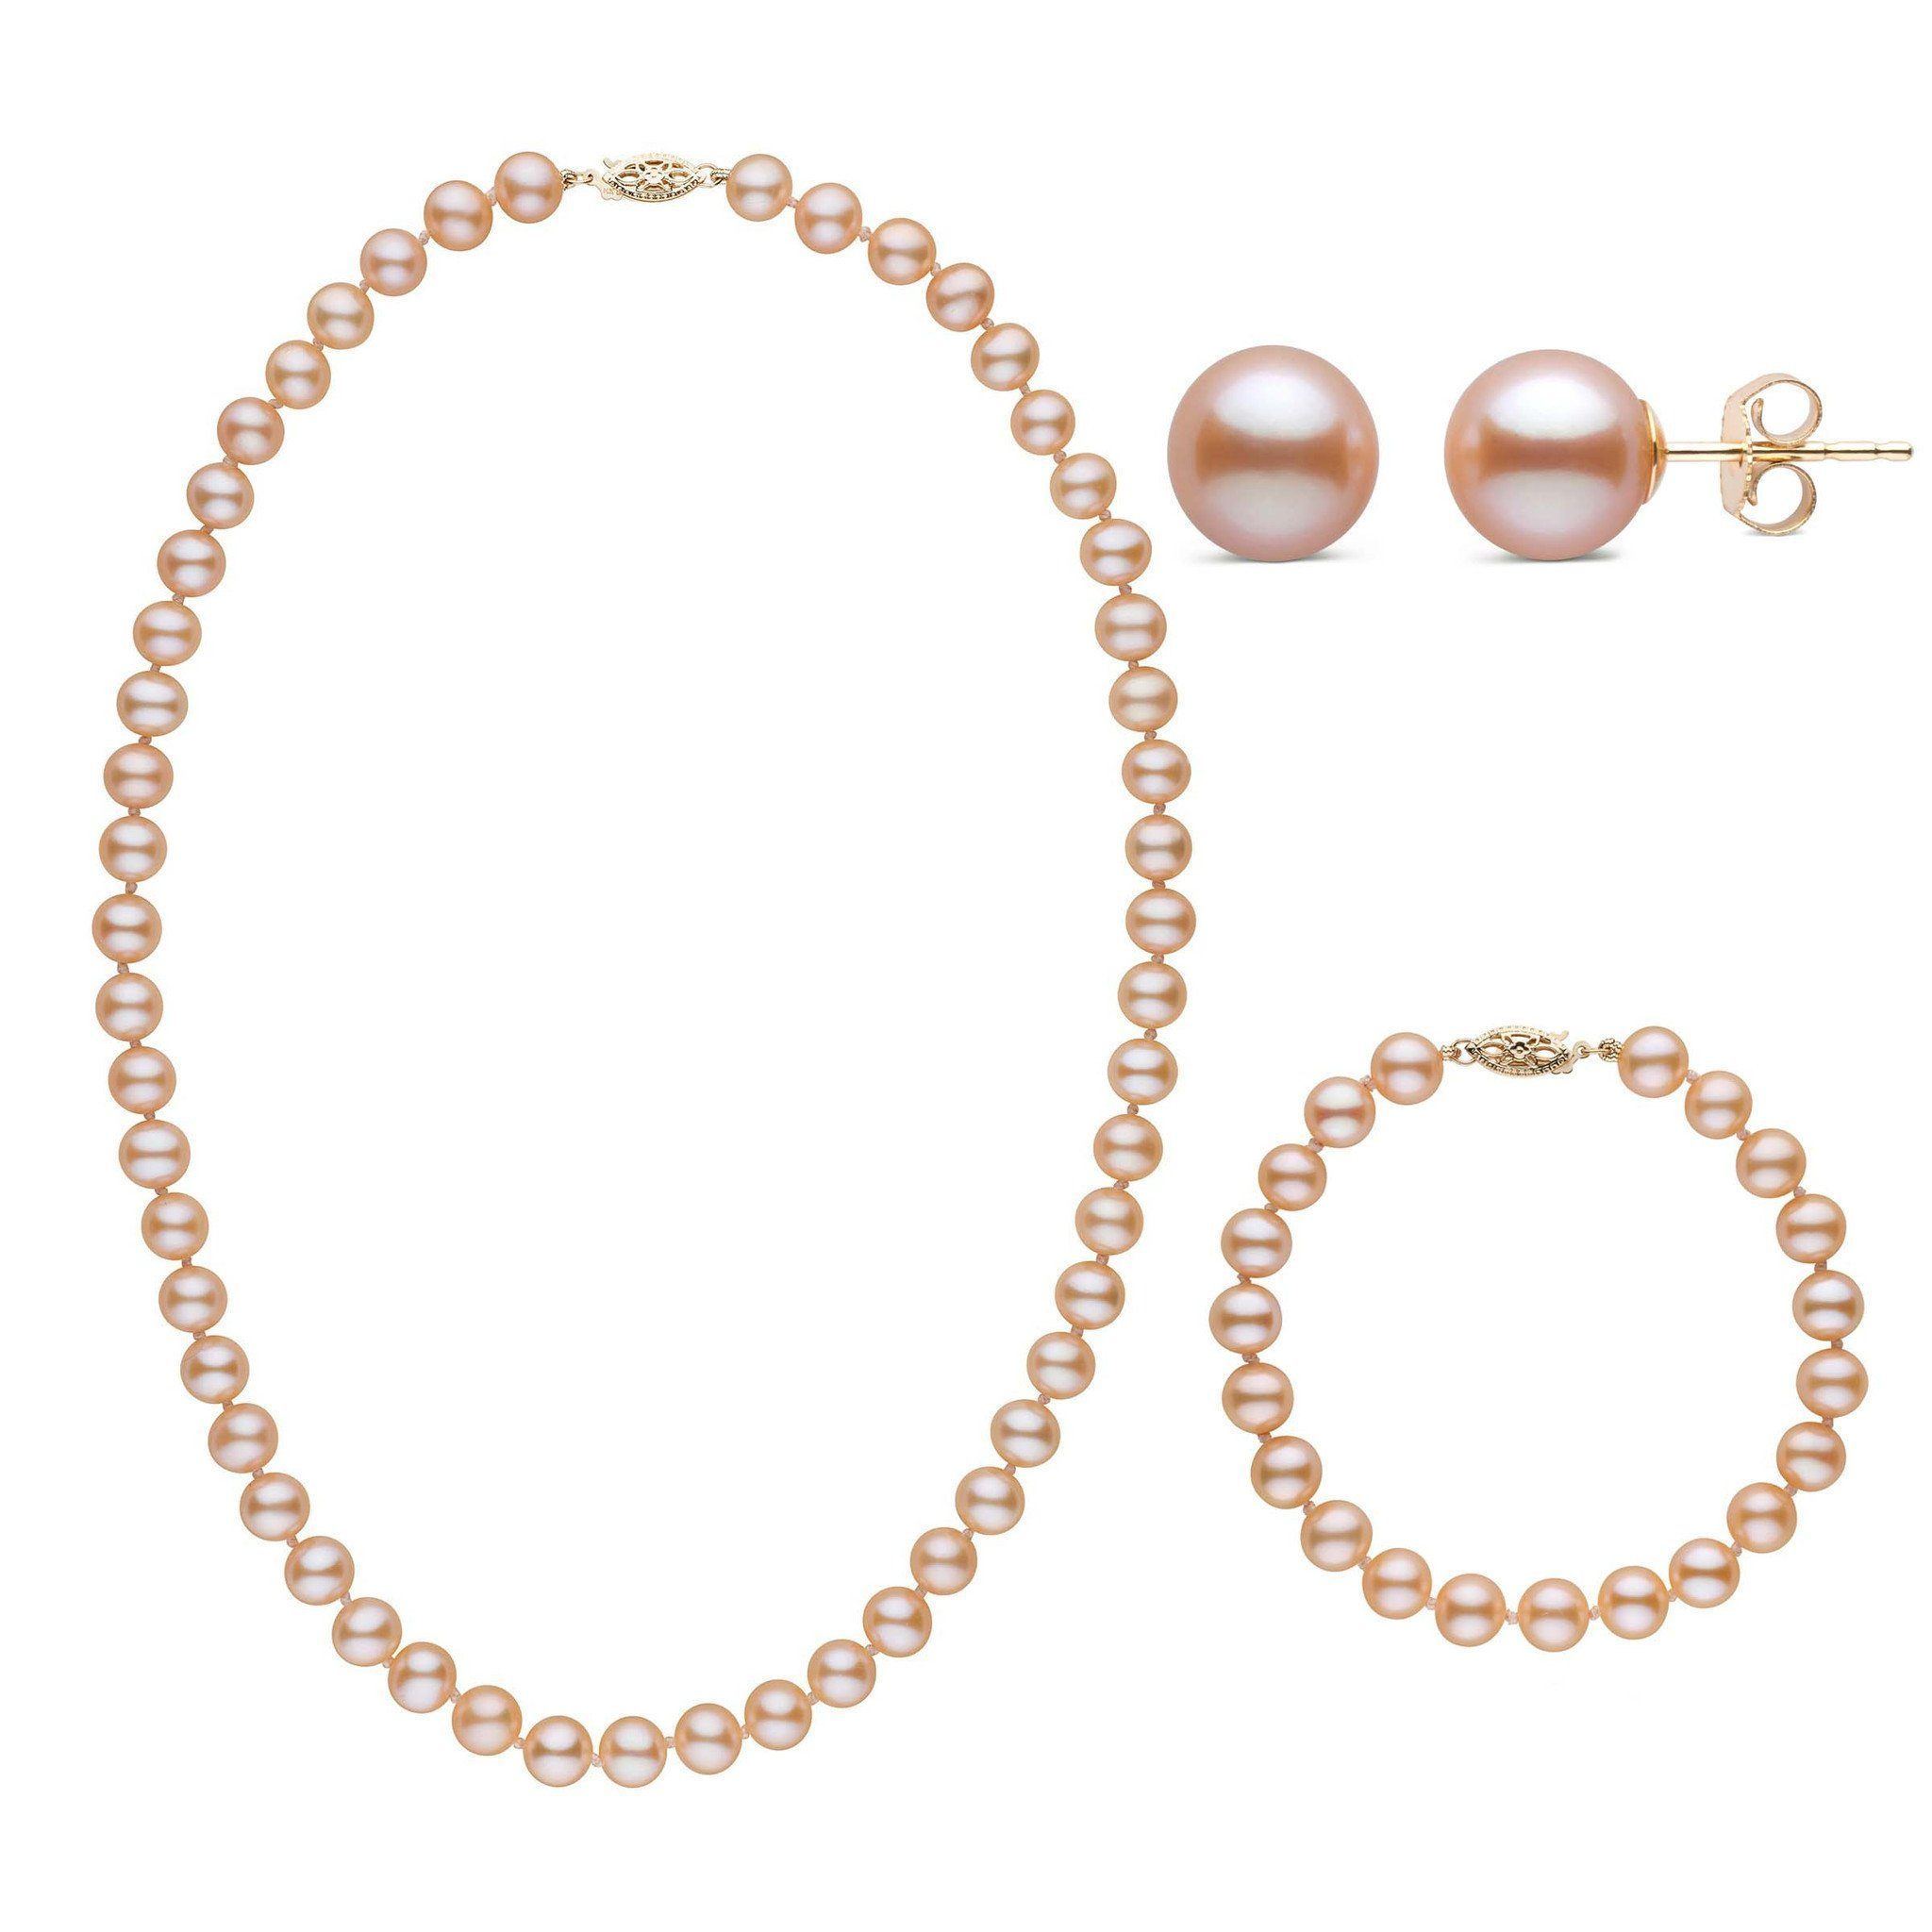 18 Inch 3 Piece Set of 7.5-8.0 mm AAA Pink Freshwater Pearls